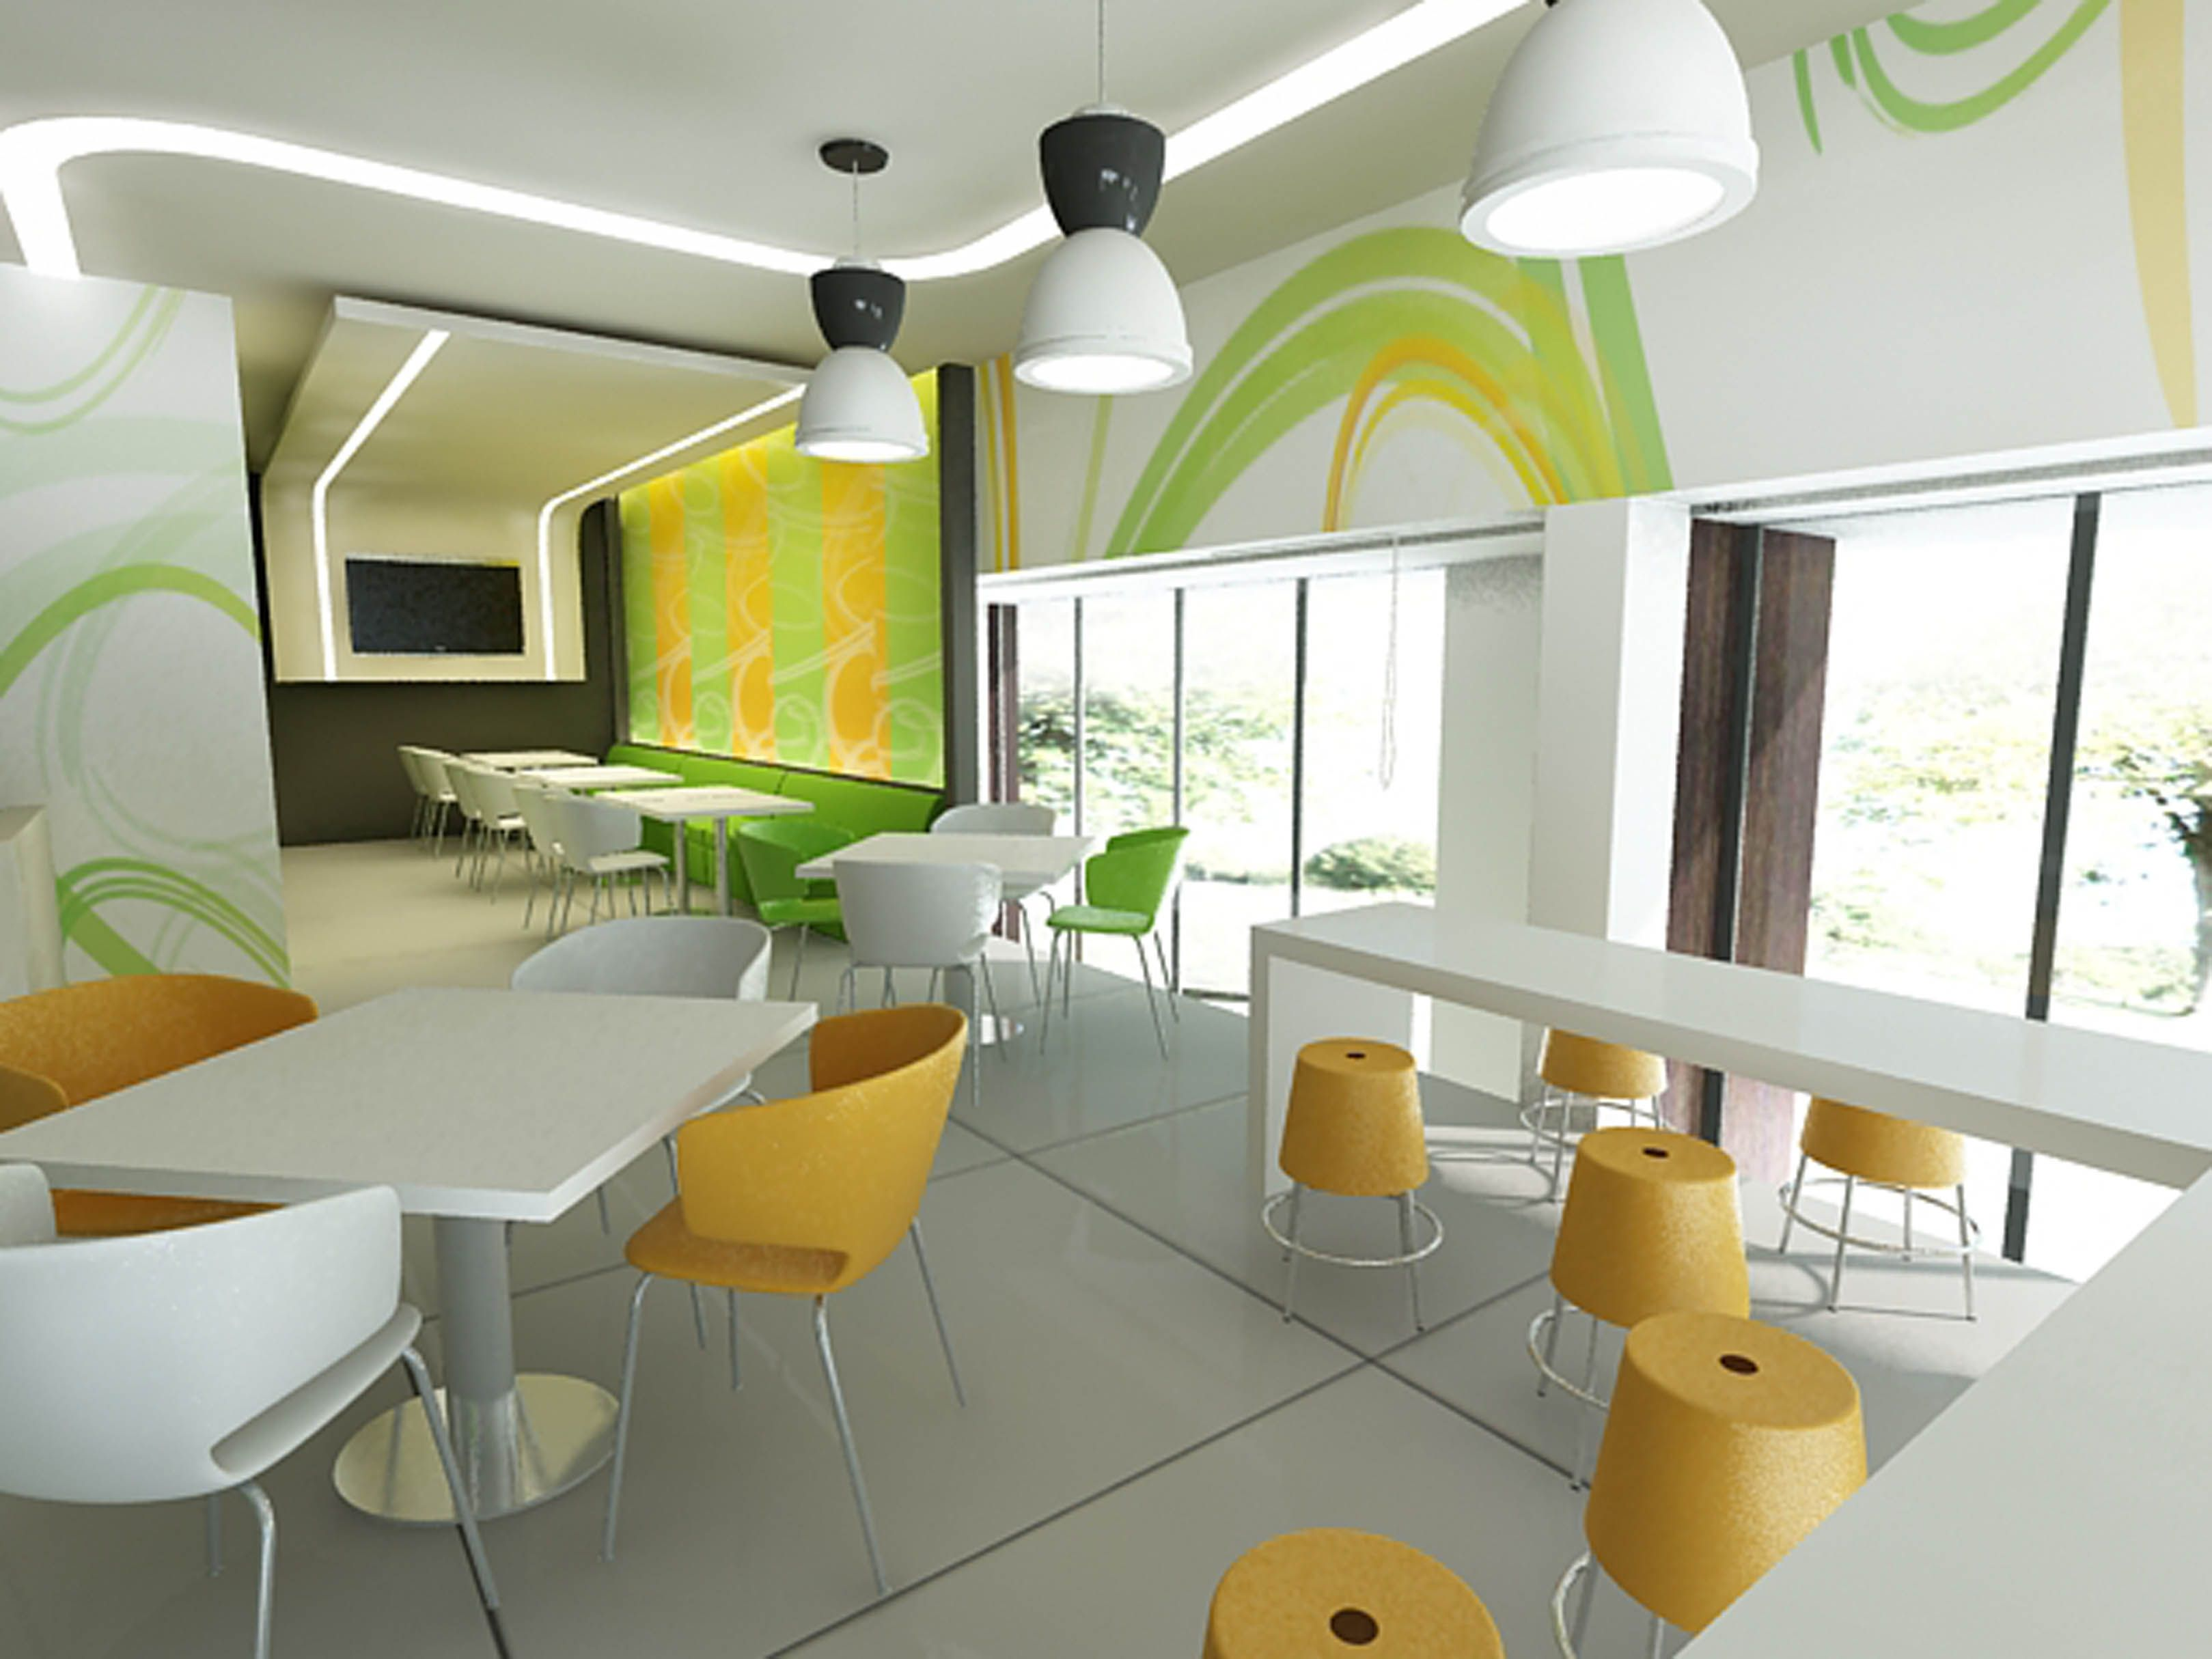 2 Interior Decoration Idea For Fast Food Restrurant 1